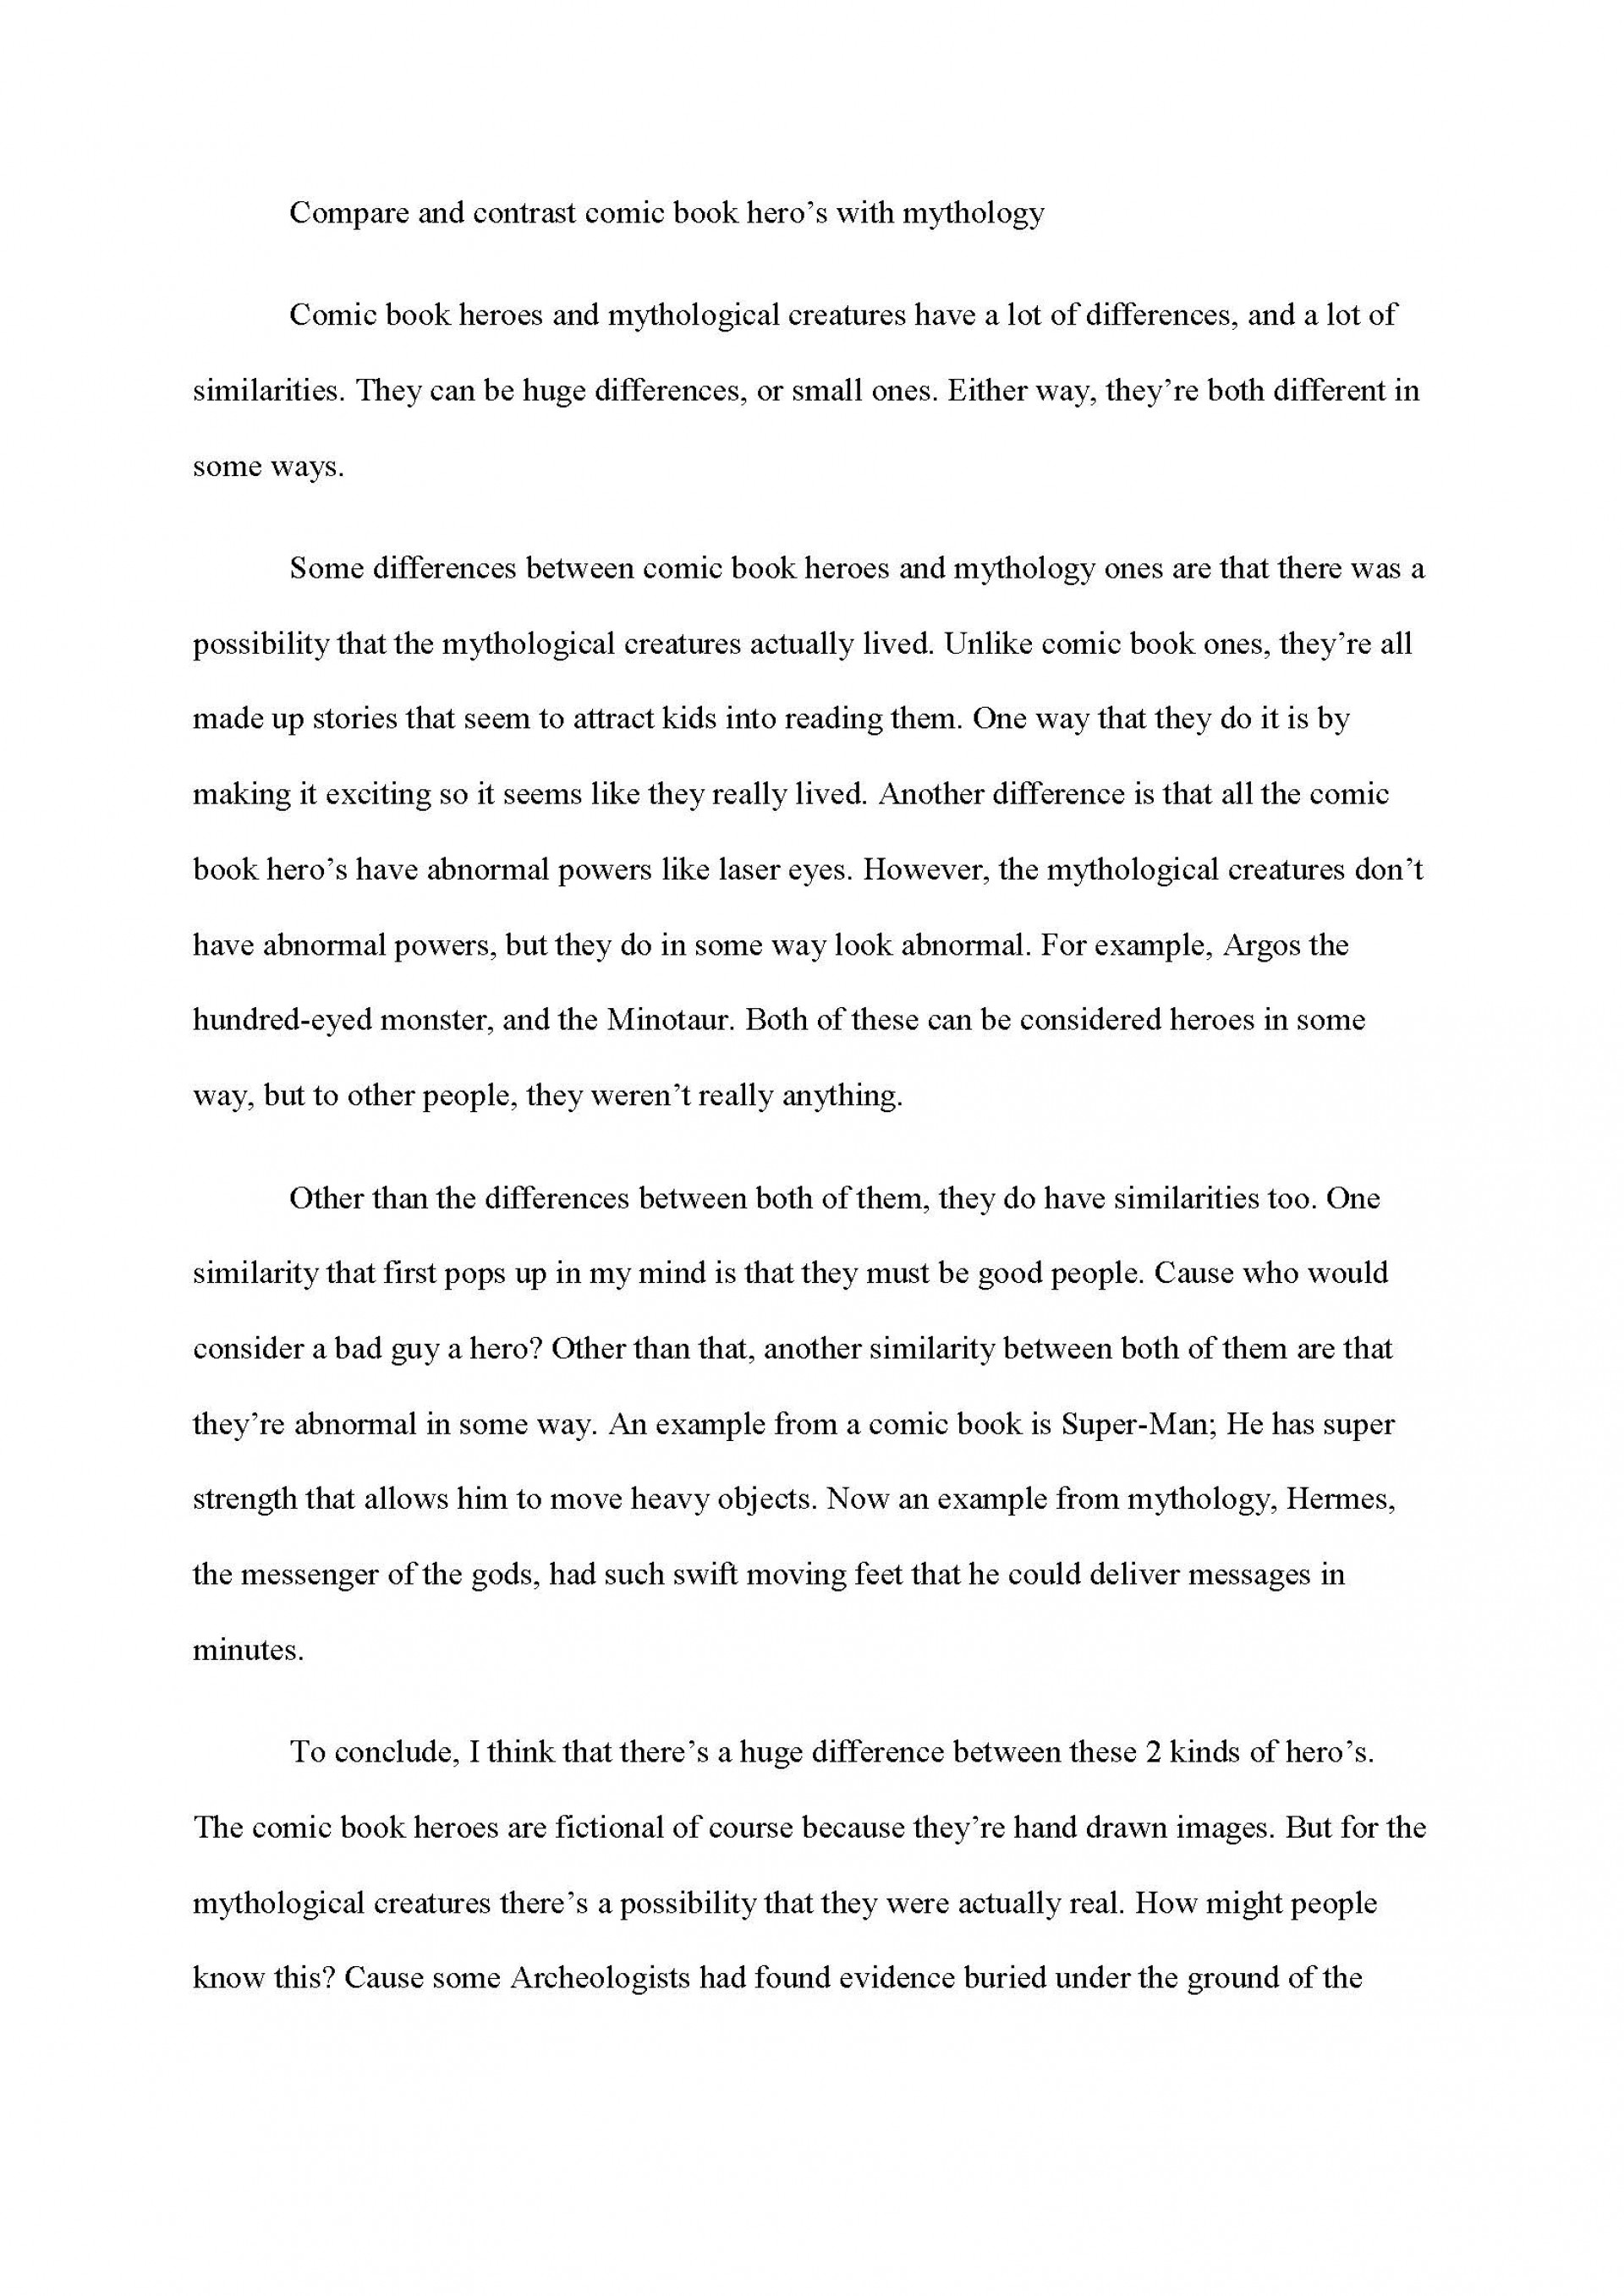 007 How To Outline Compare And Contrast Essay Sampleid8072 Awesome A Create An For 1920